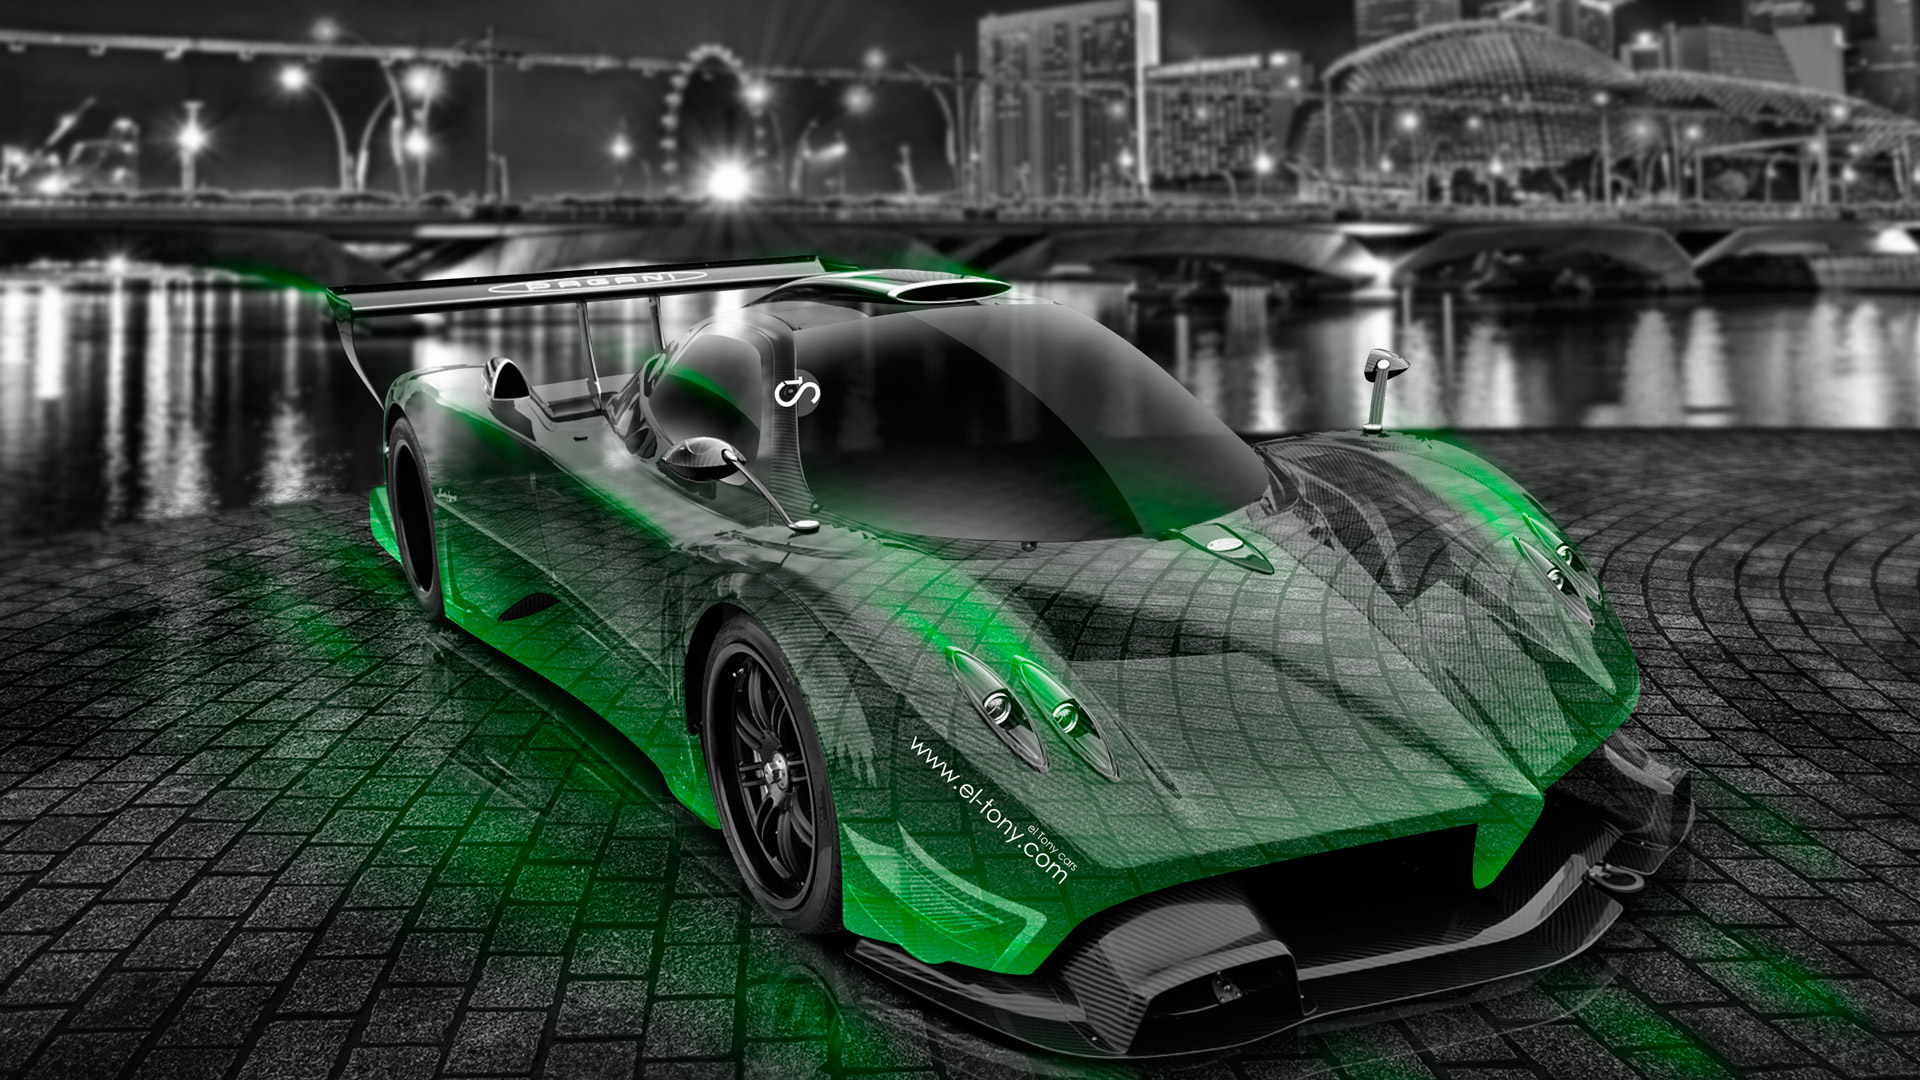 Pagani-Zonda-R-Crystal-City-Car-2014-Green-Neon-HD-Wallpapers-design-by-Tony-Kokhan-[www.el-tony.com]